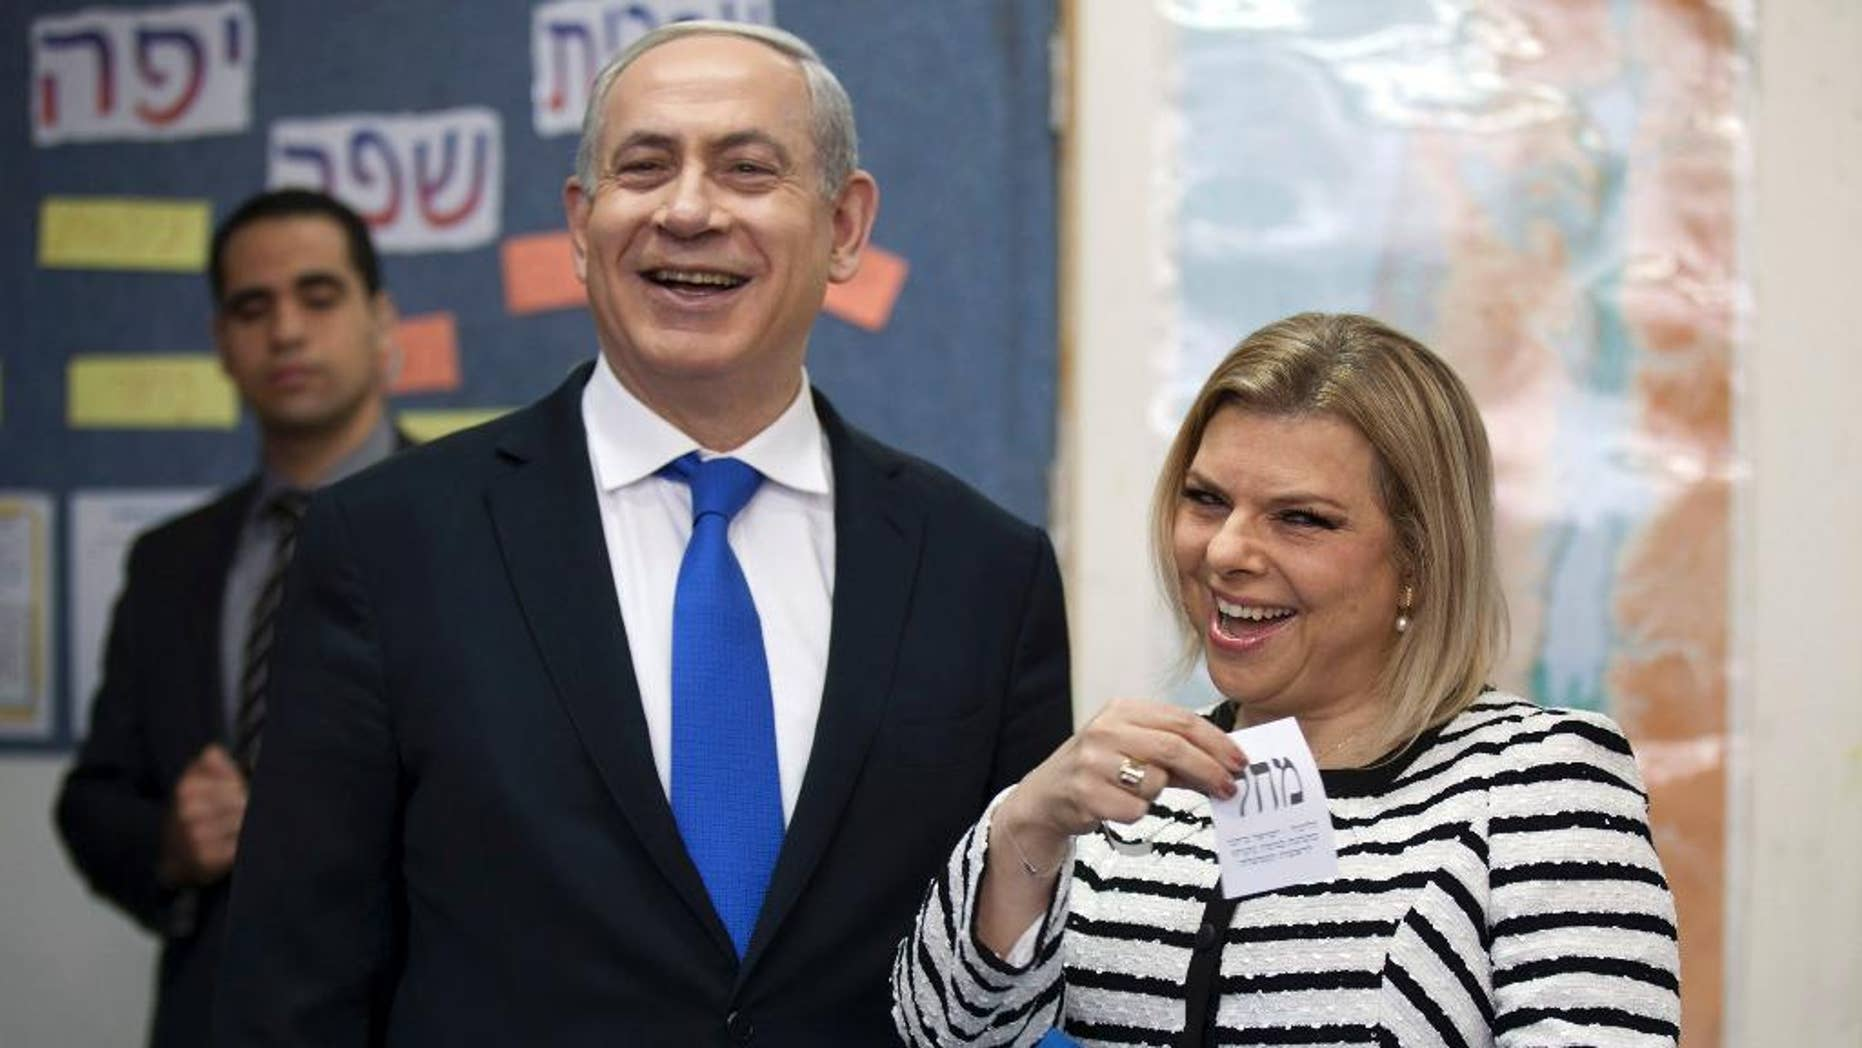 In this Jan. 22, 2013 file photo, Israeli Prime Minister Benjamin Netanyahu stands by his wife Sara as she casts her ballot at a polling station in Jerusalem.